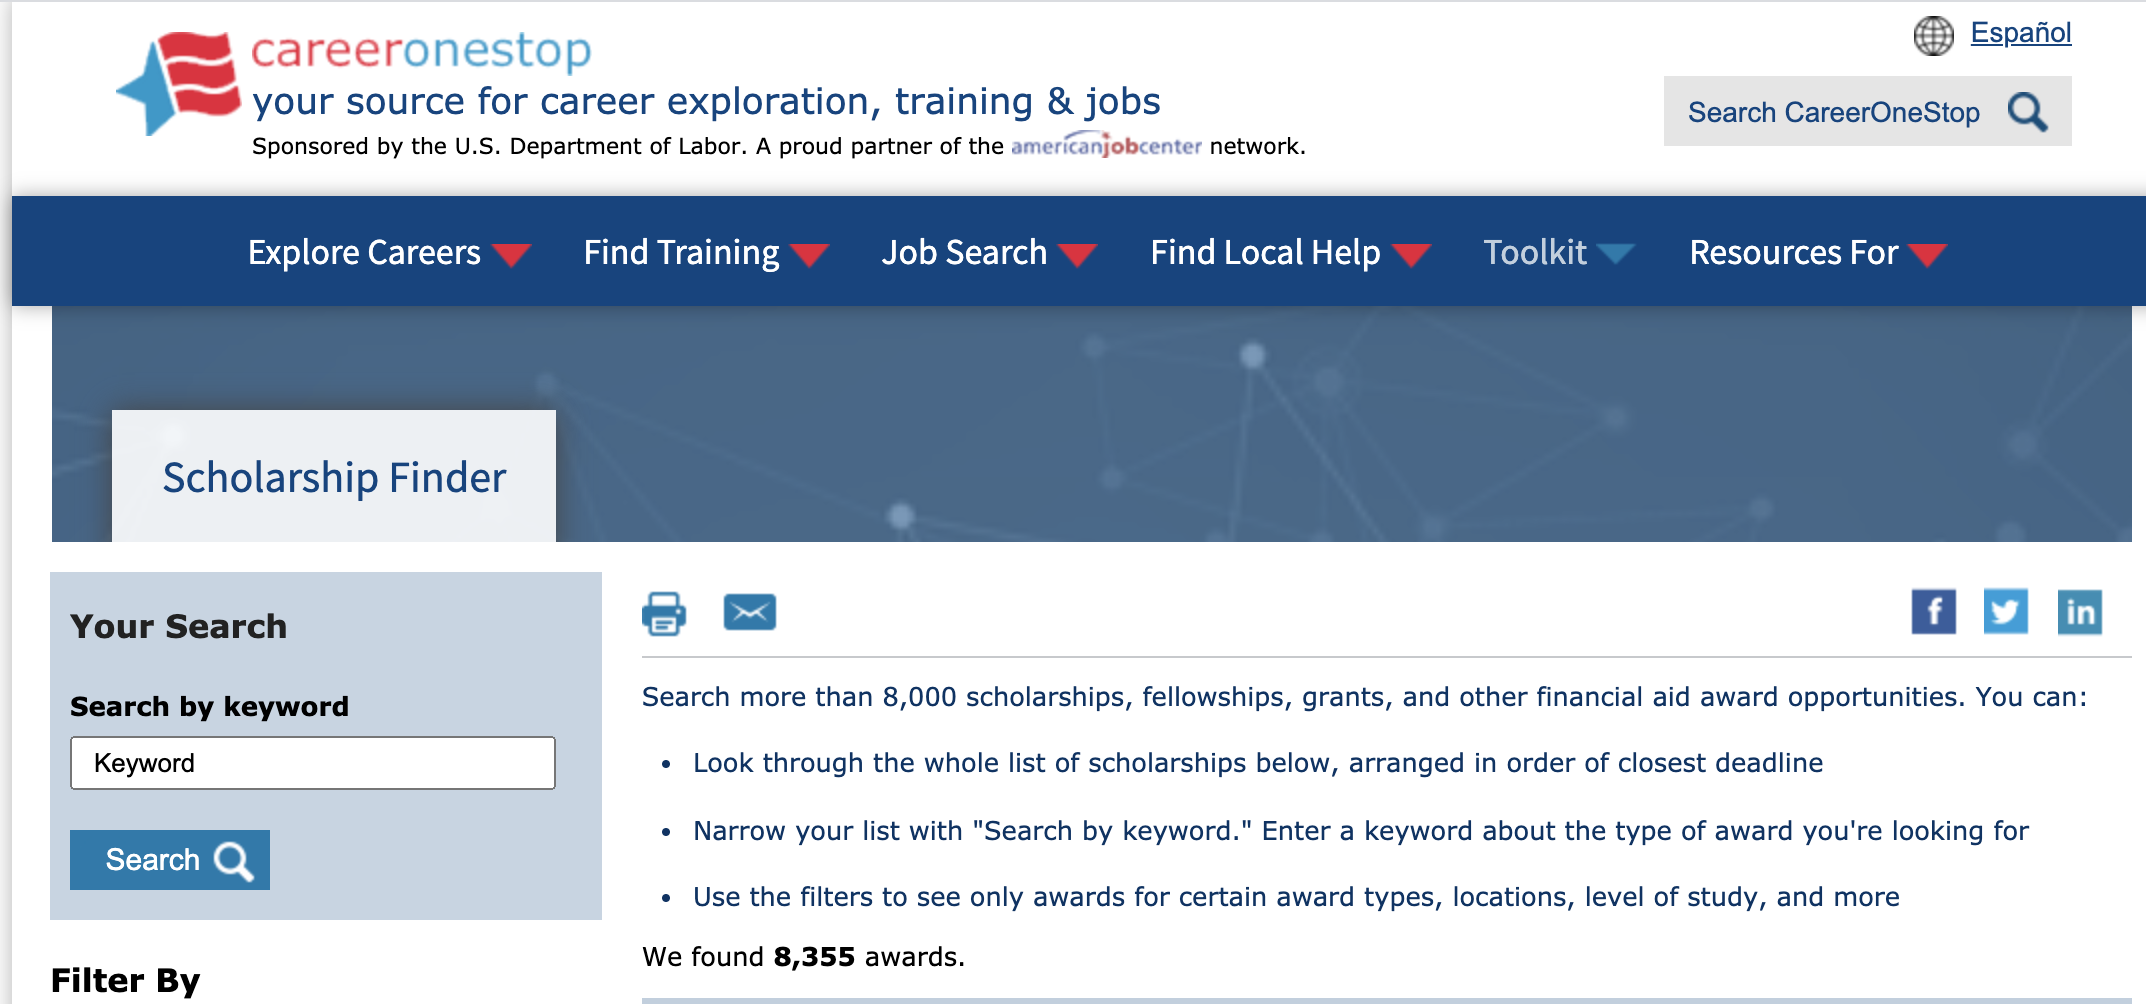 The scholarship search tool showing 8,355 awards in the database